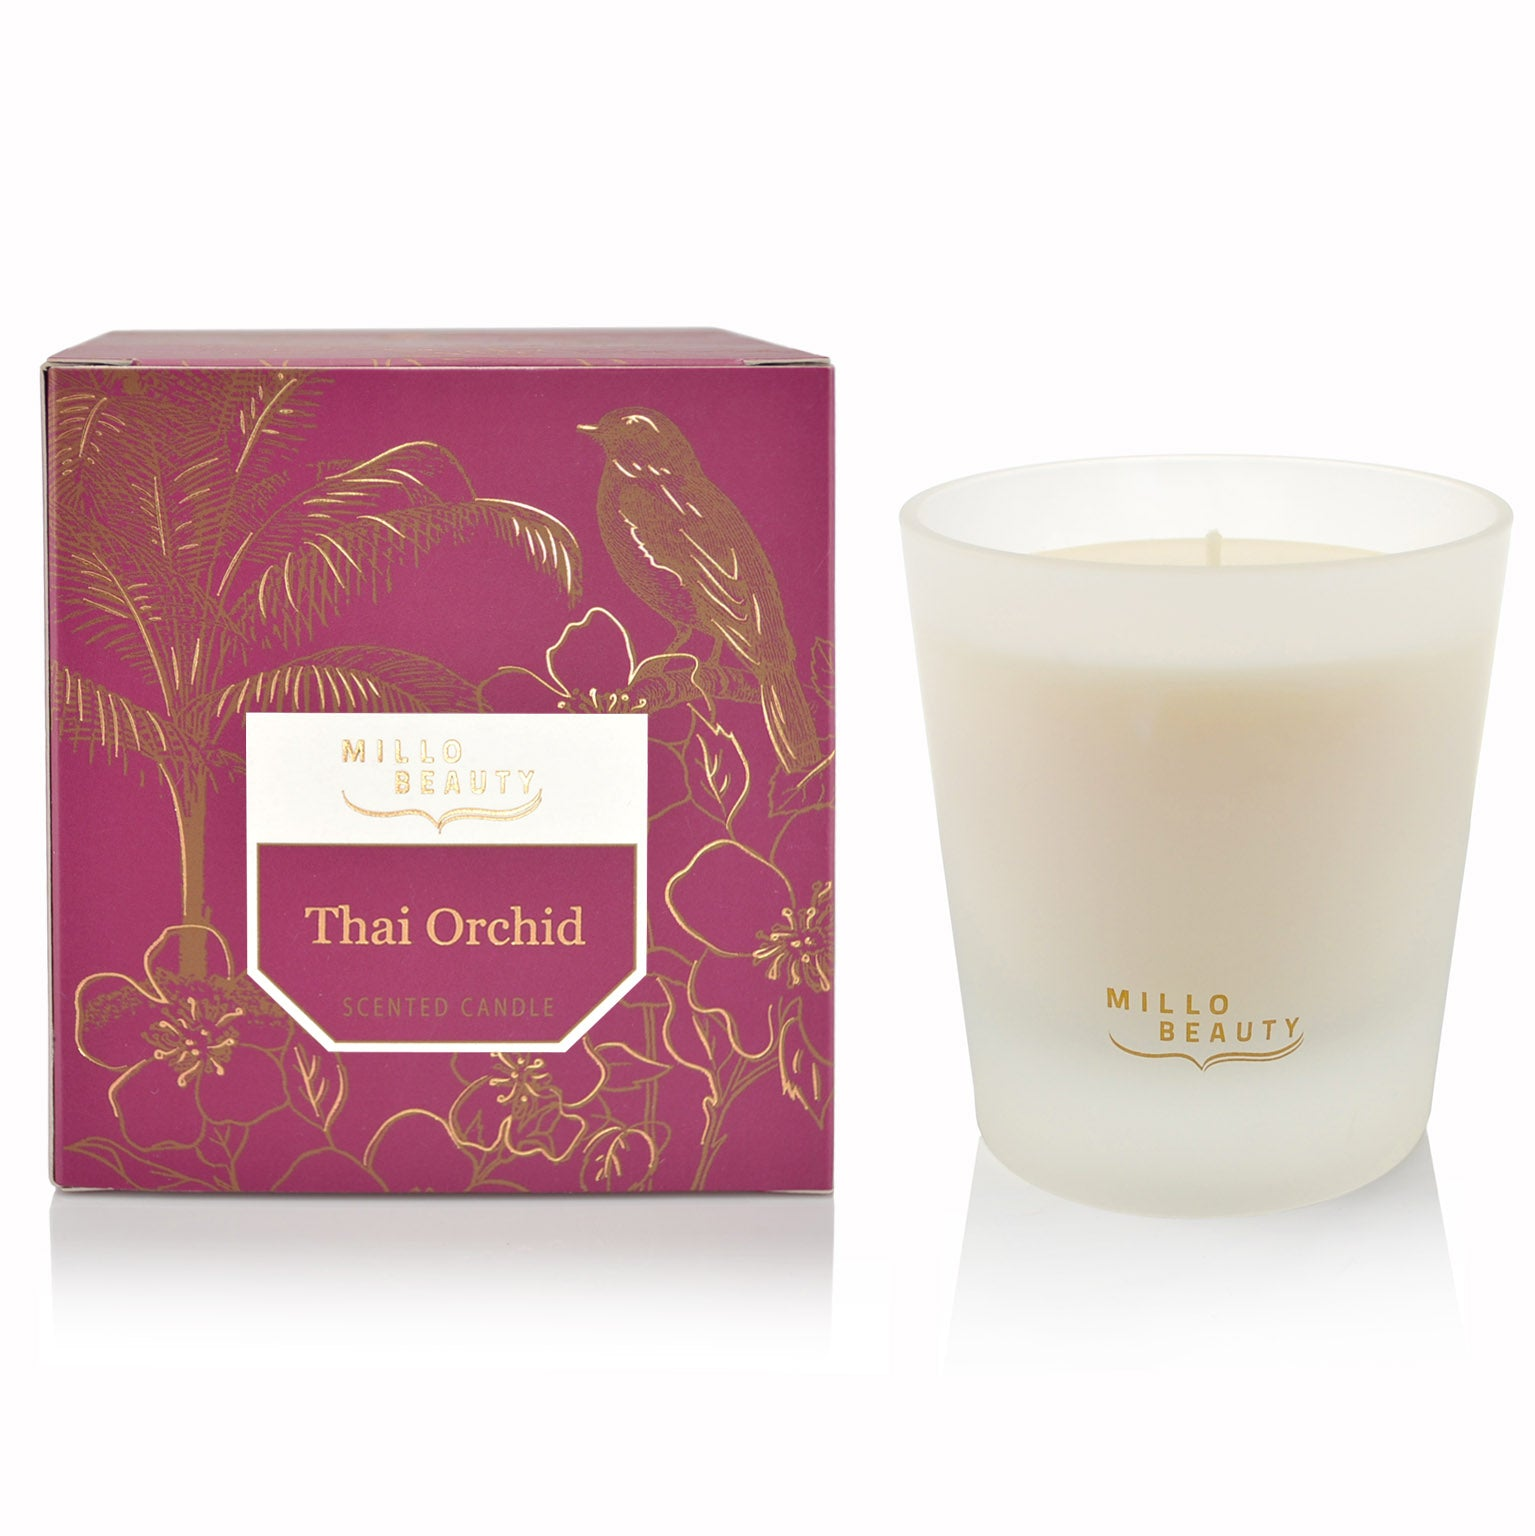 Thai Orchid Scented Candle